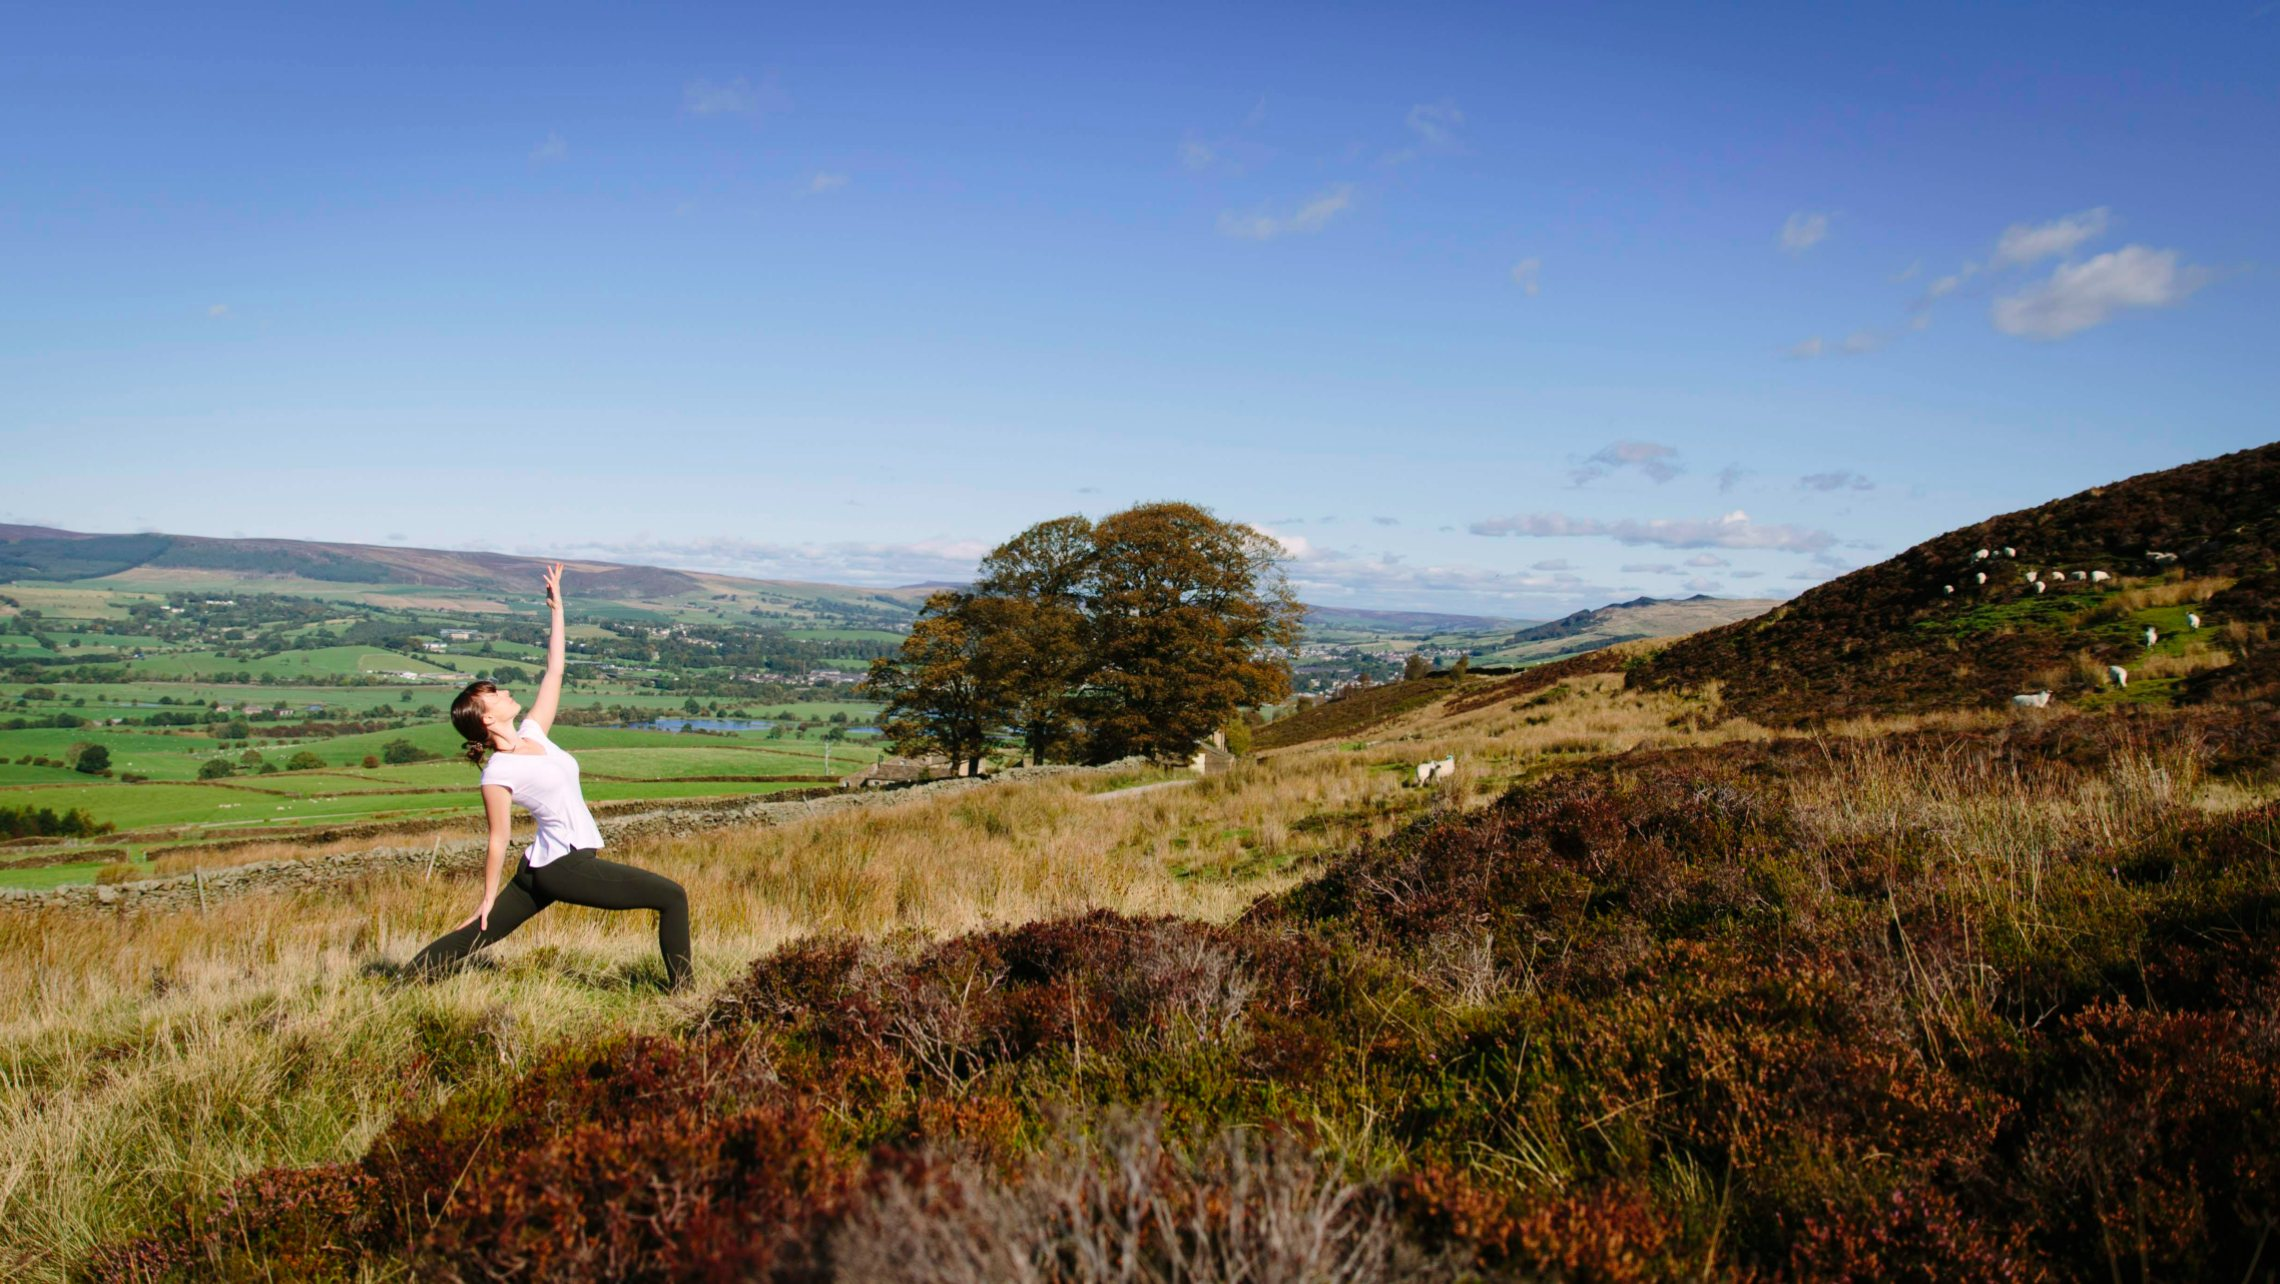 A woman in a white T-shirt and black leggings standing in a yoga pose on a hill, with Yorkshire countryside surrounding her